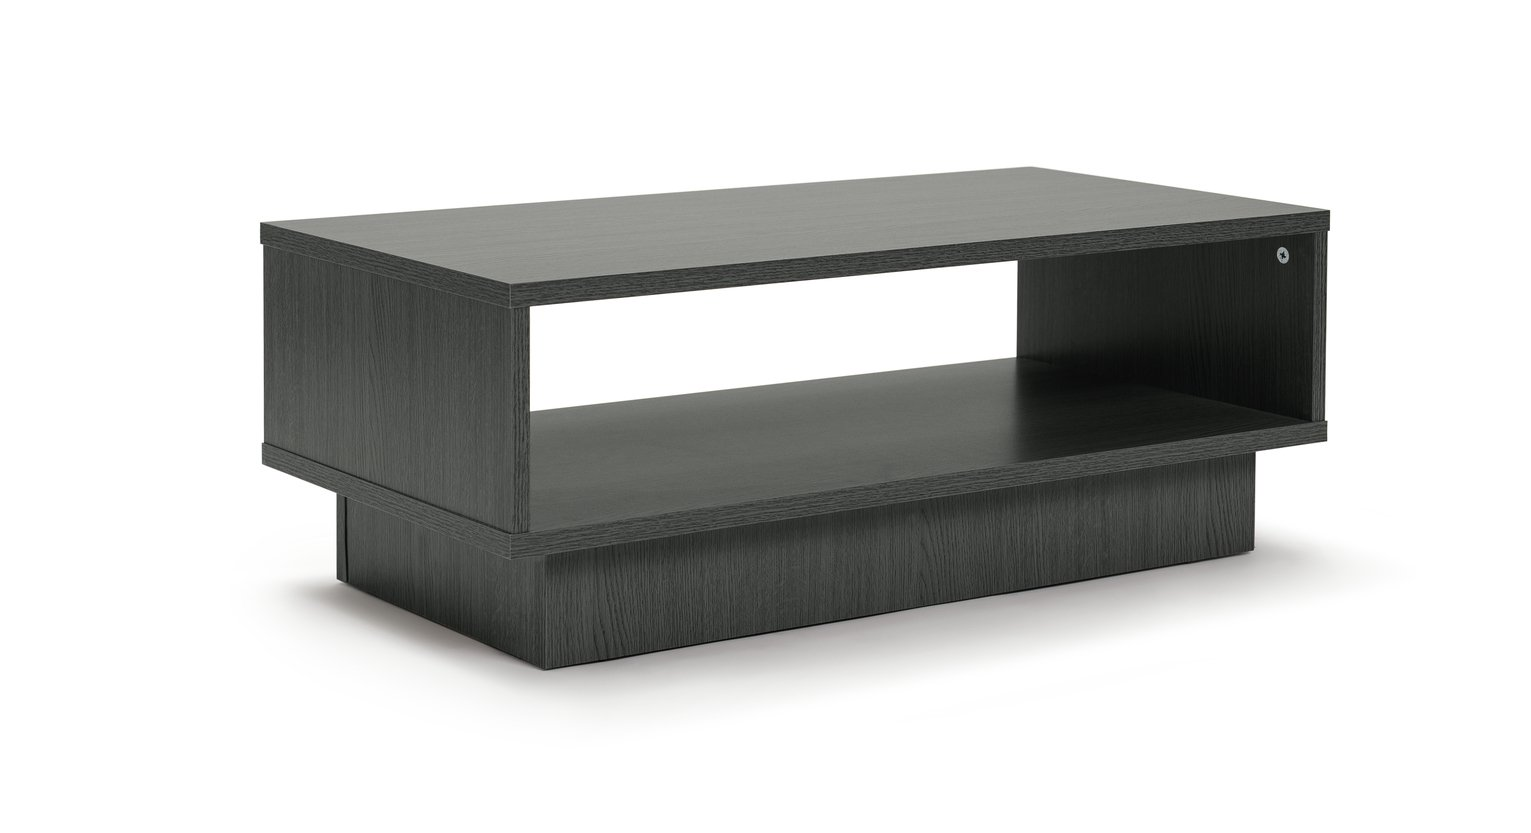 Habitat Cubes 1 Shelf Coffee Table - Black